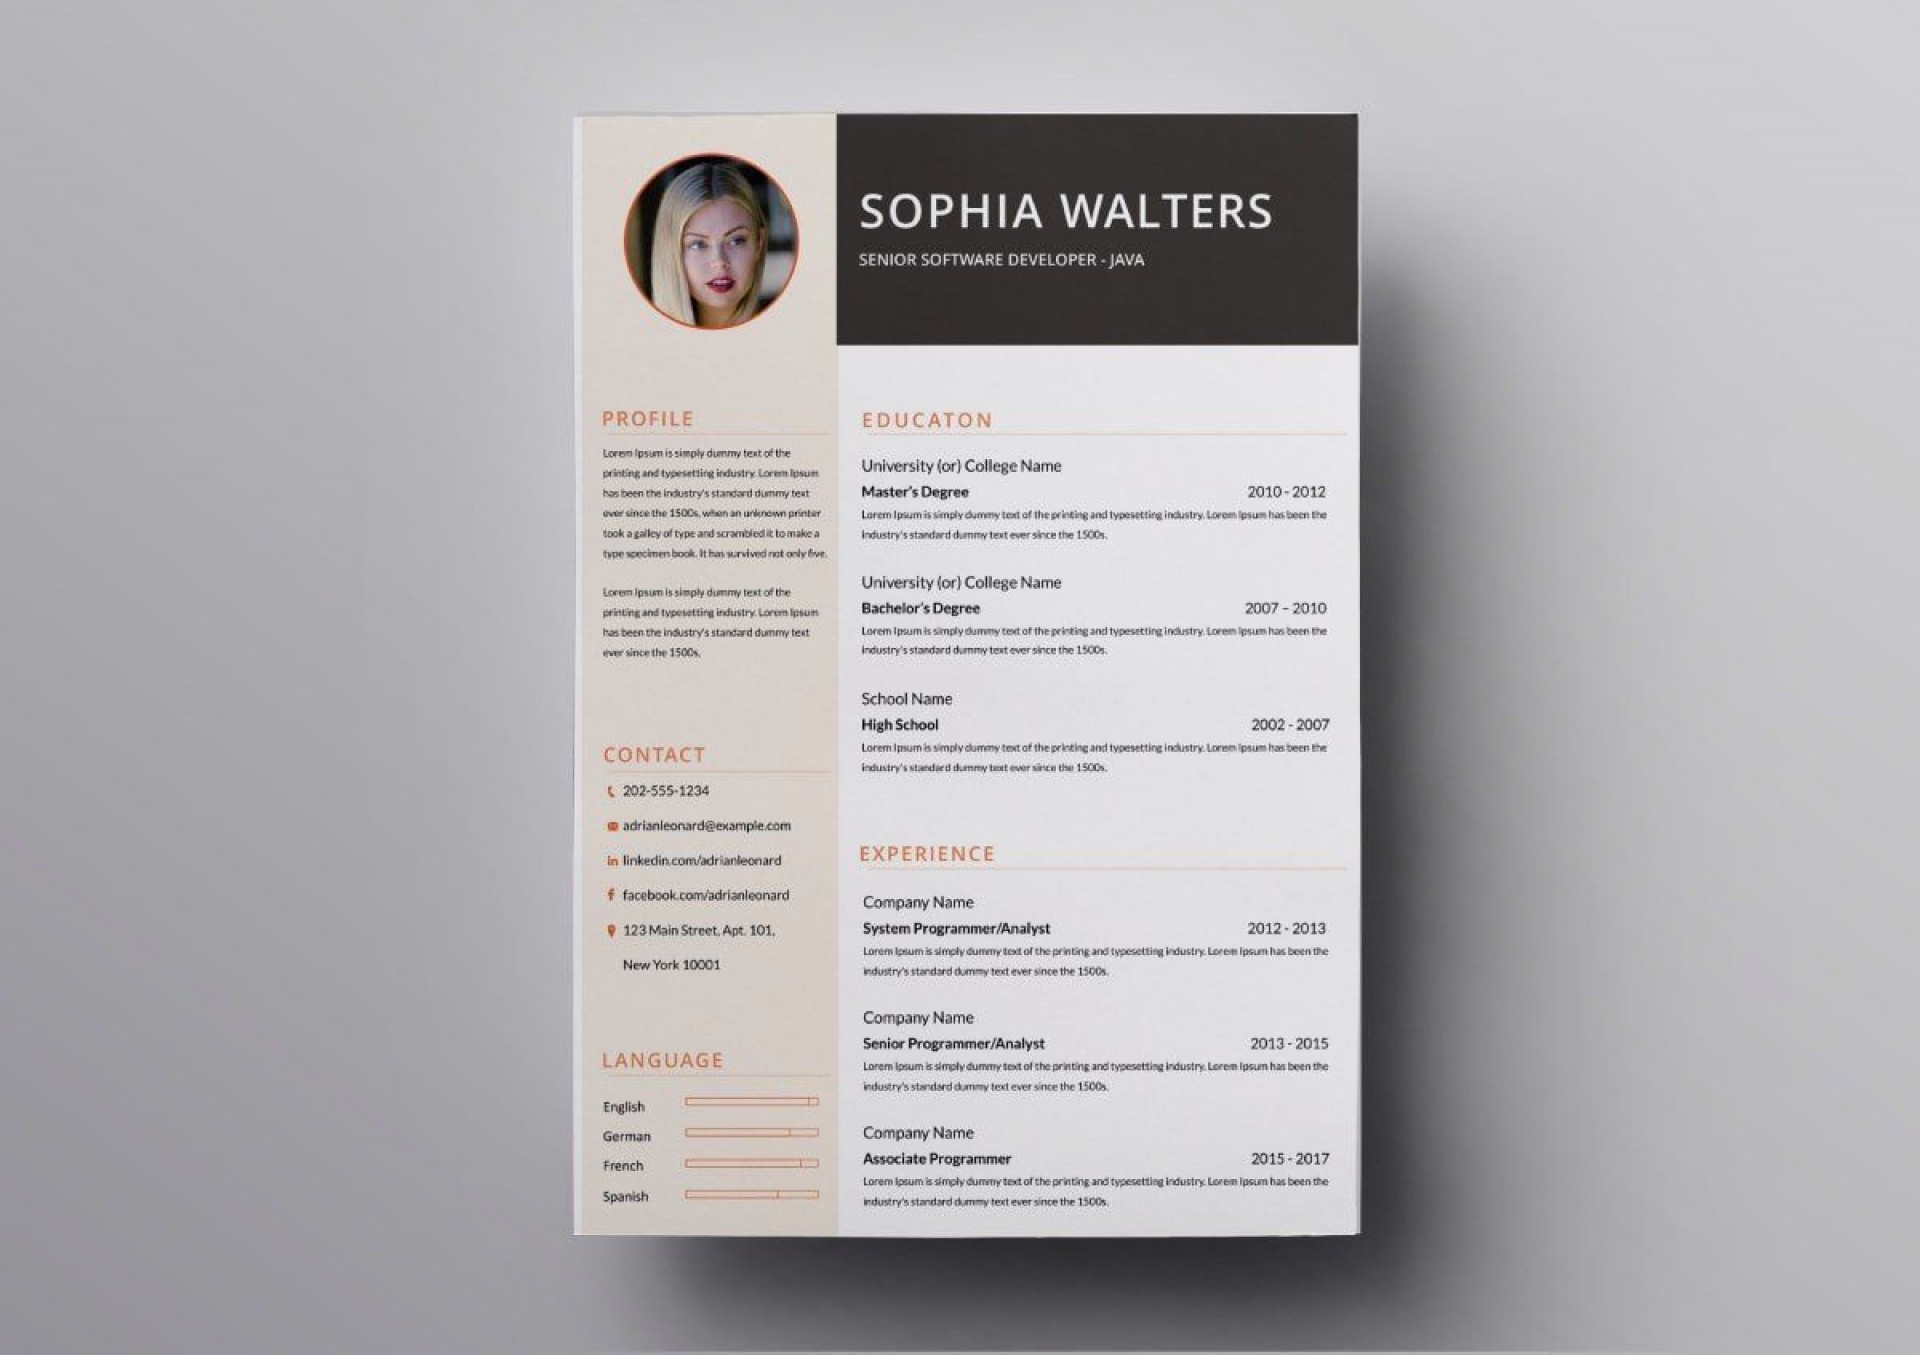 008 Incredible Download Resume Template Free Mac Example  For1920